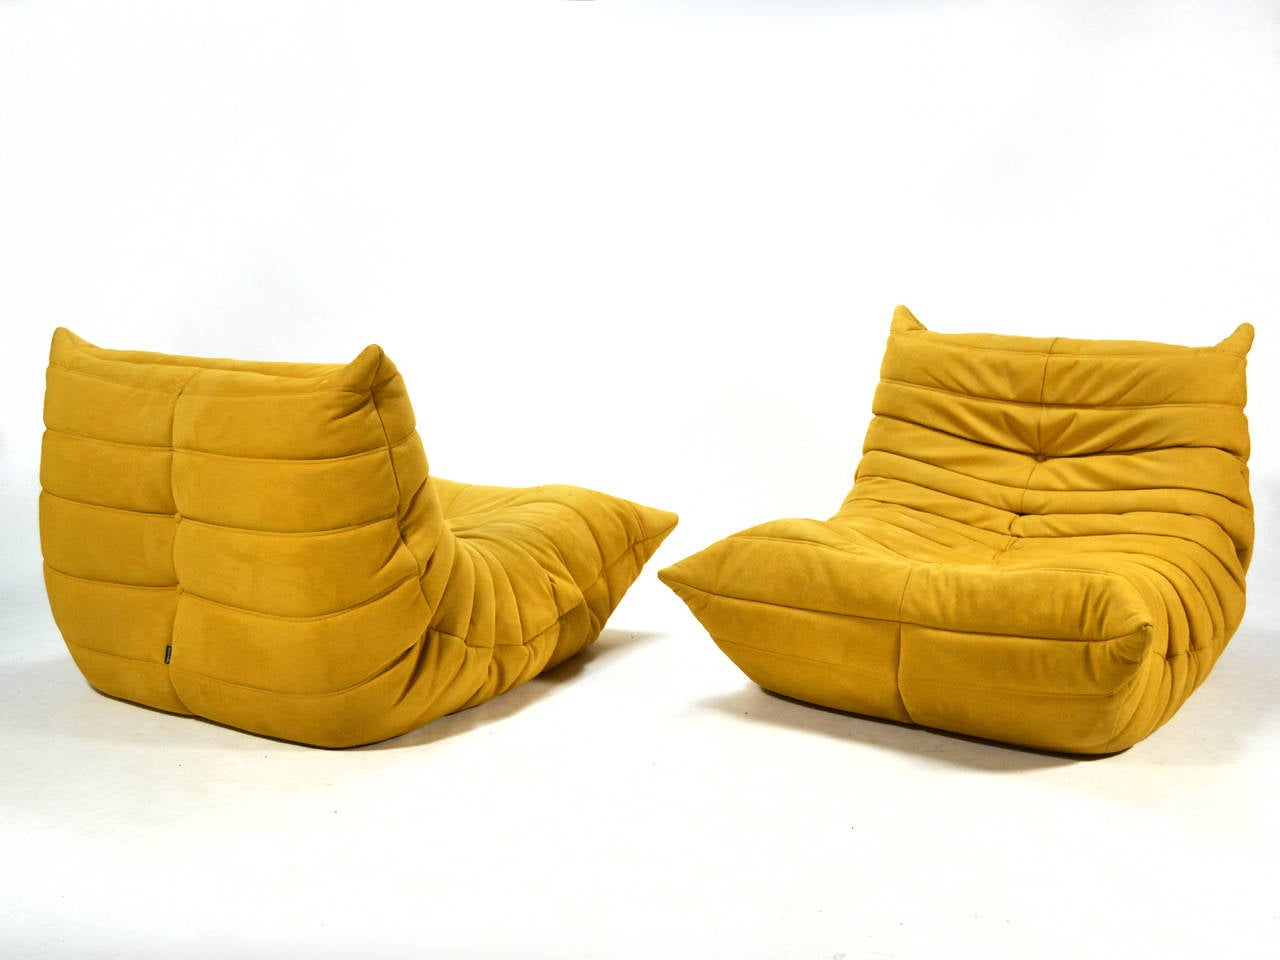 Pair of michel ducaroy togo lounge chairs by ligne roset for Housse togo ligne roset